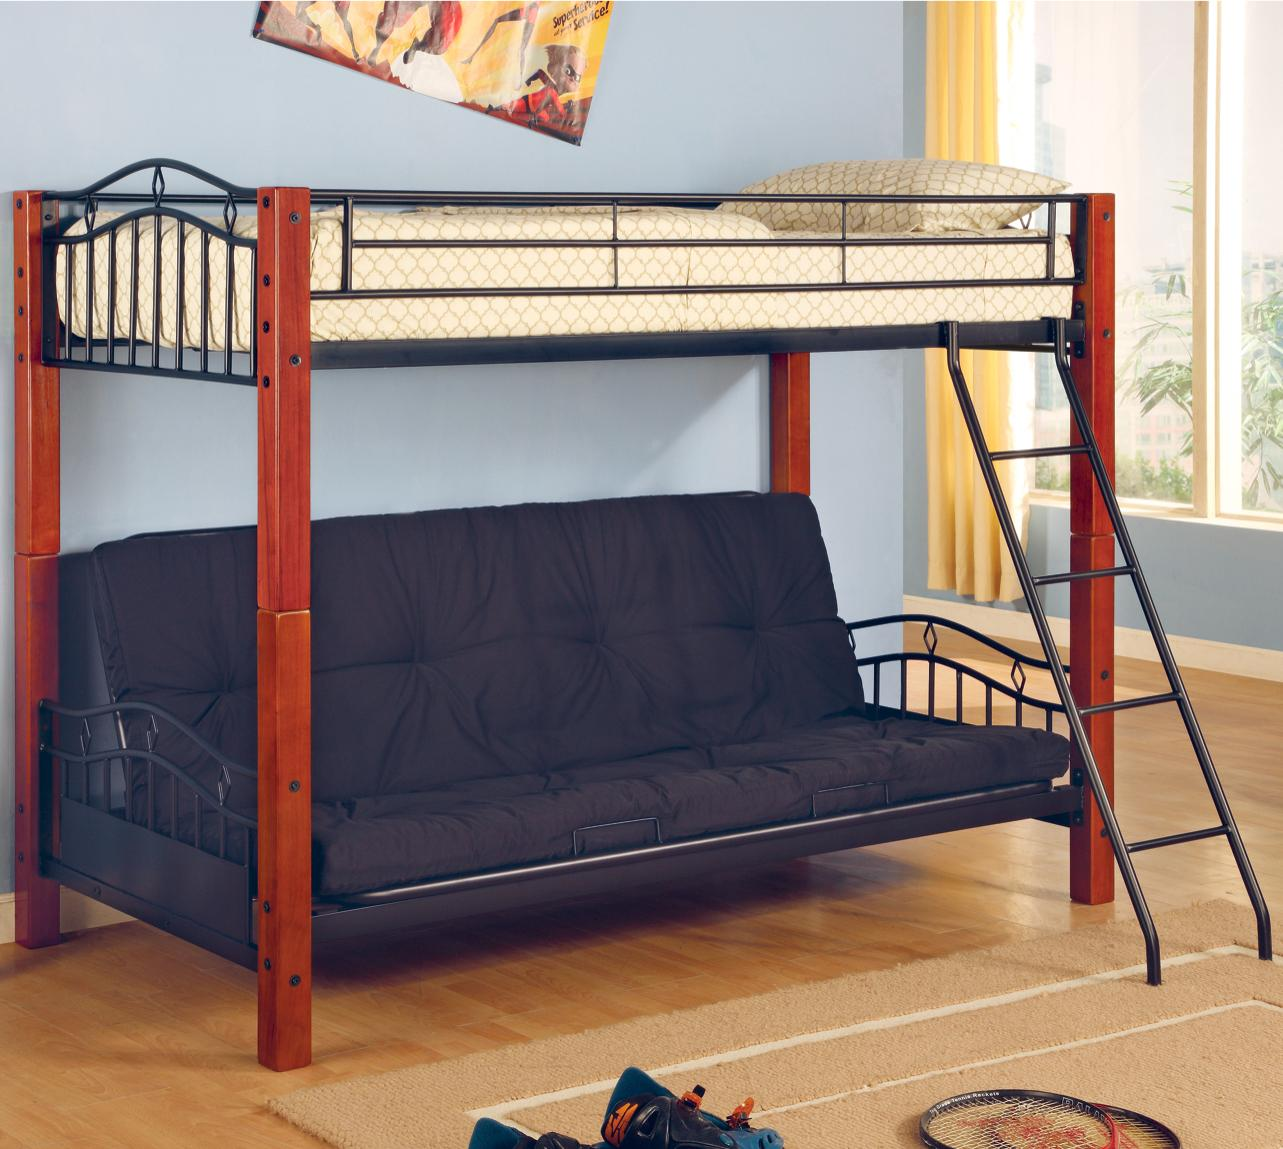 bunk zurich zurichfulloverfullbunkbed cfm bed futon beds hayneedle dhp for sale full over product